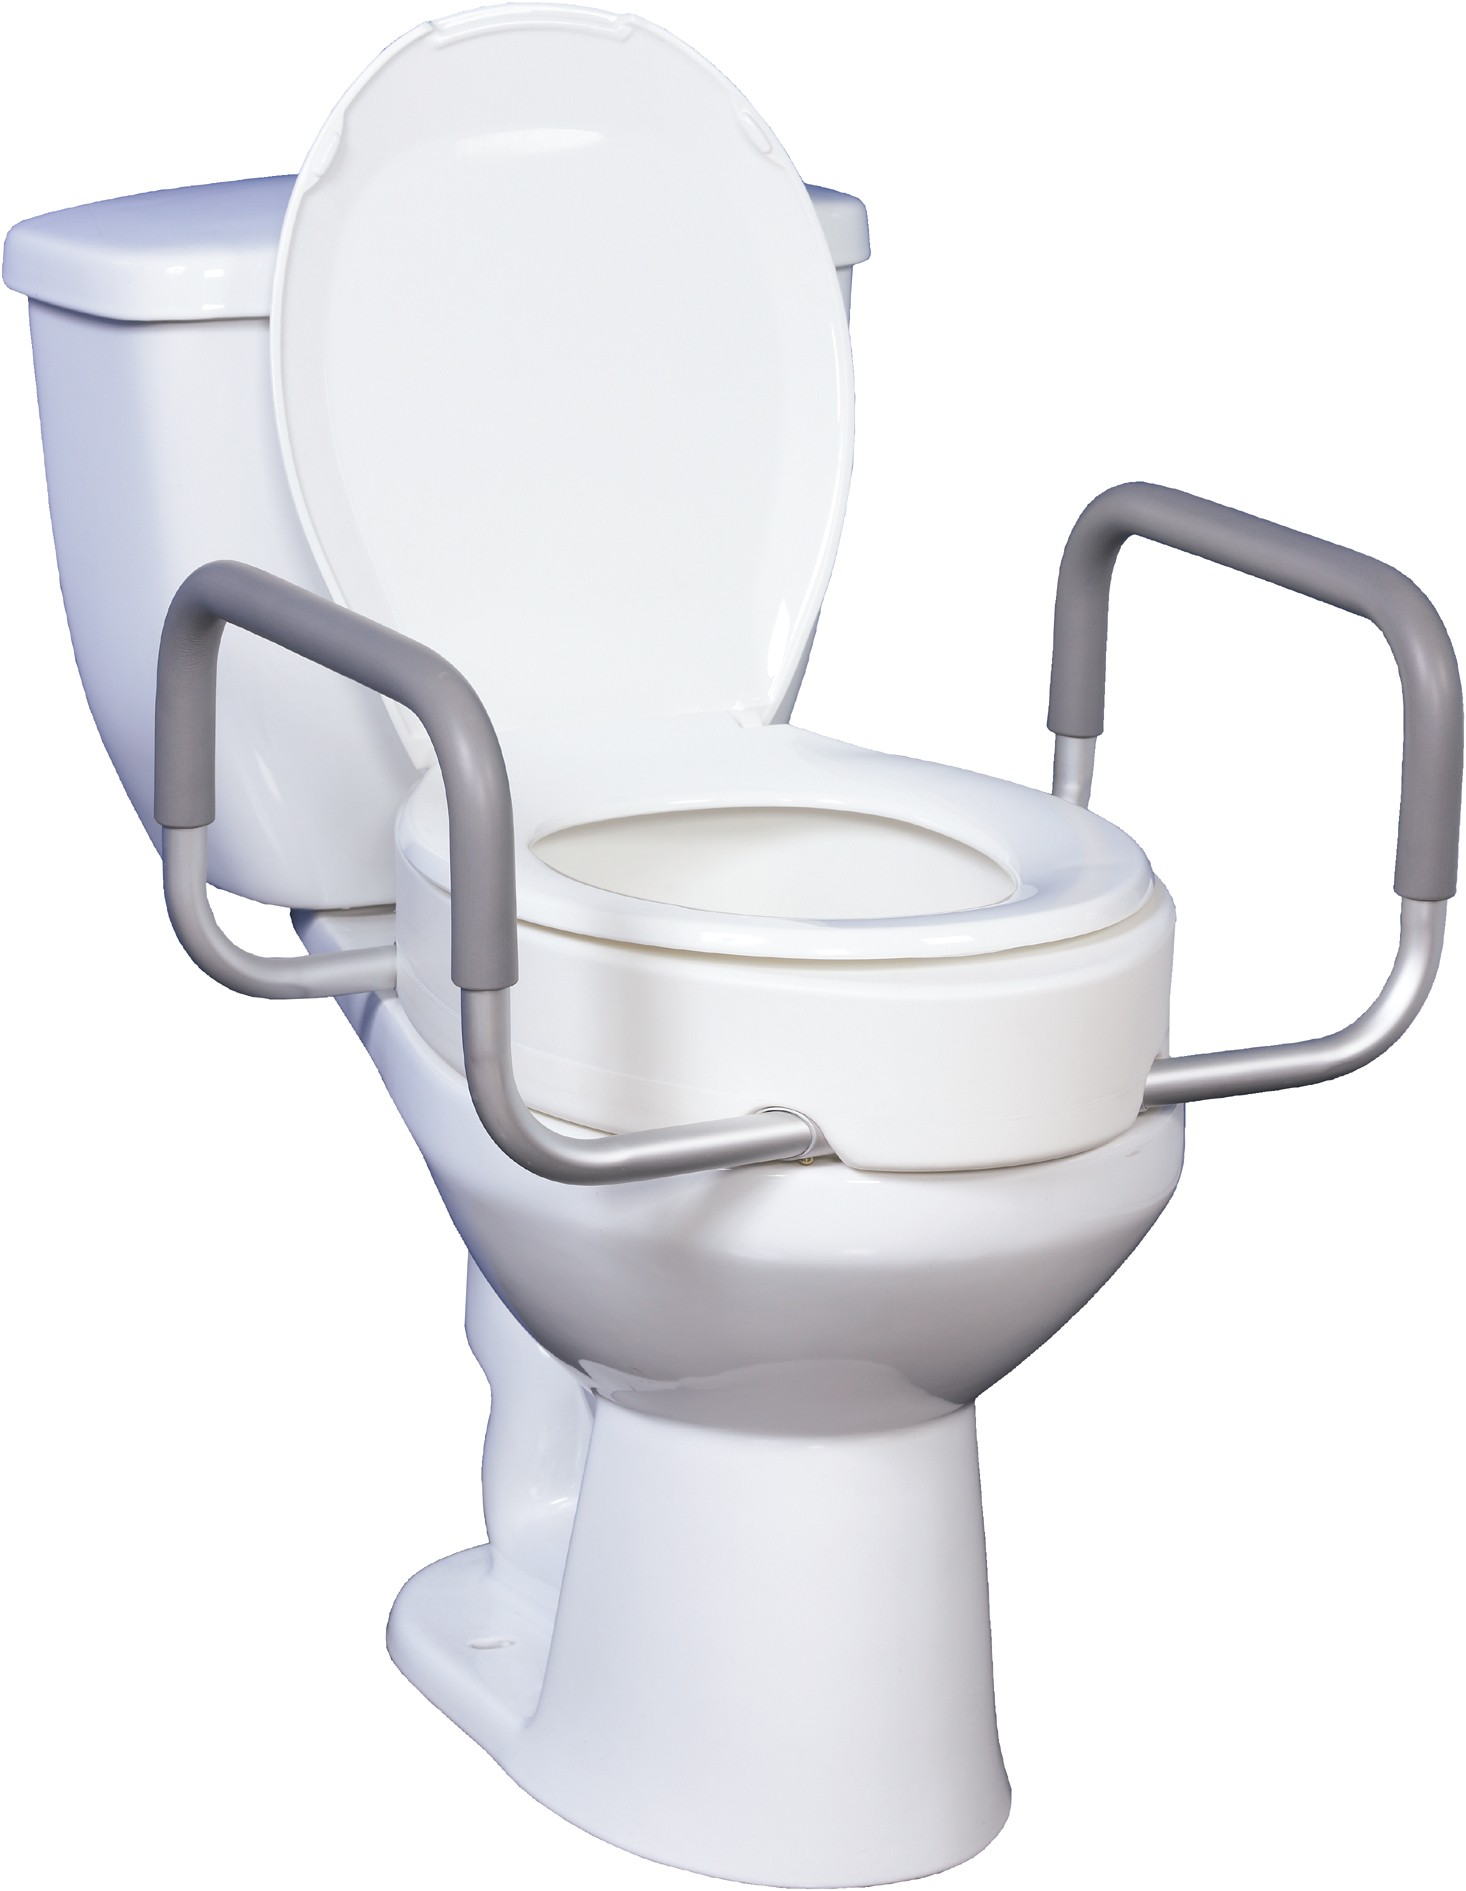 long toilet seat covers. Elongated Toilet Seat Covers Designed For Your Comfort  elongated toilet seat riser